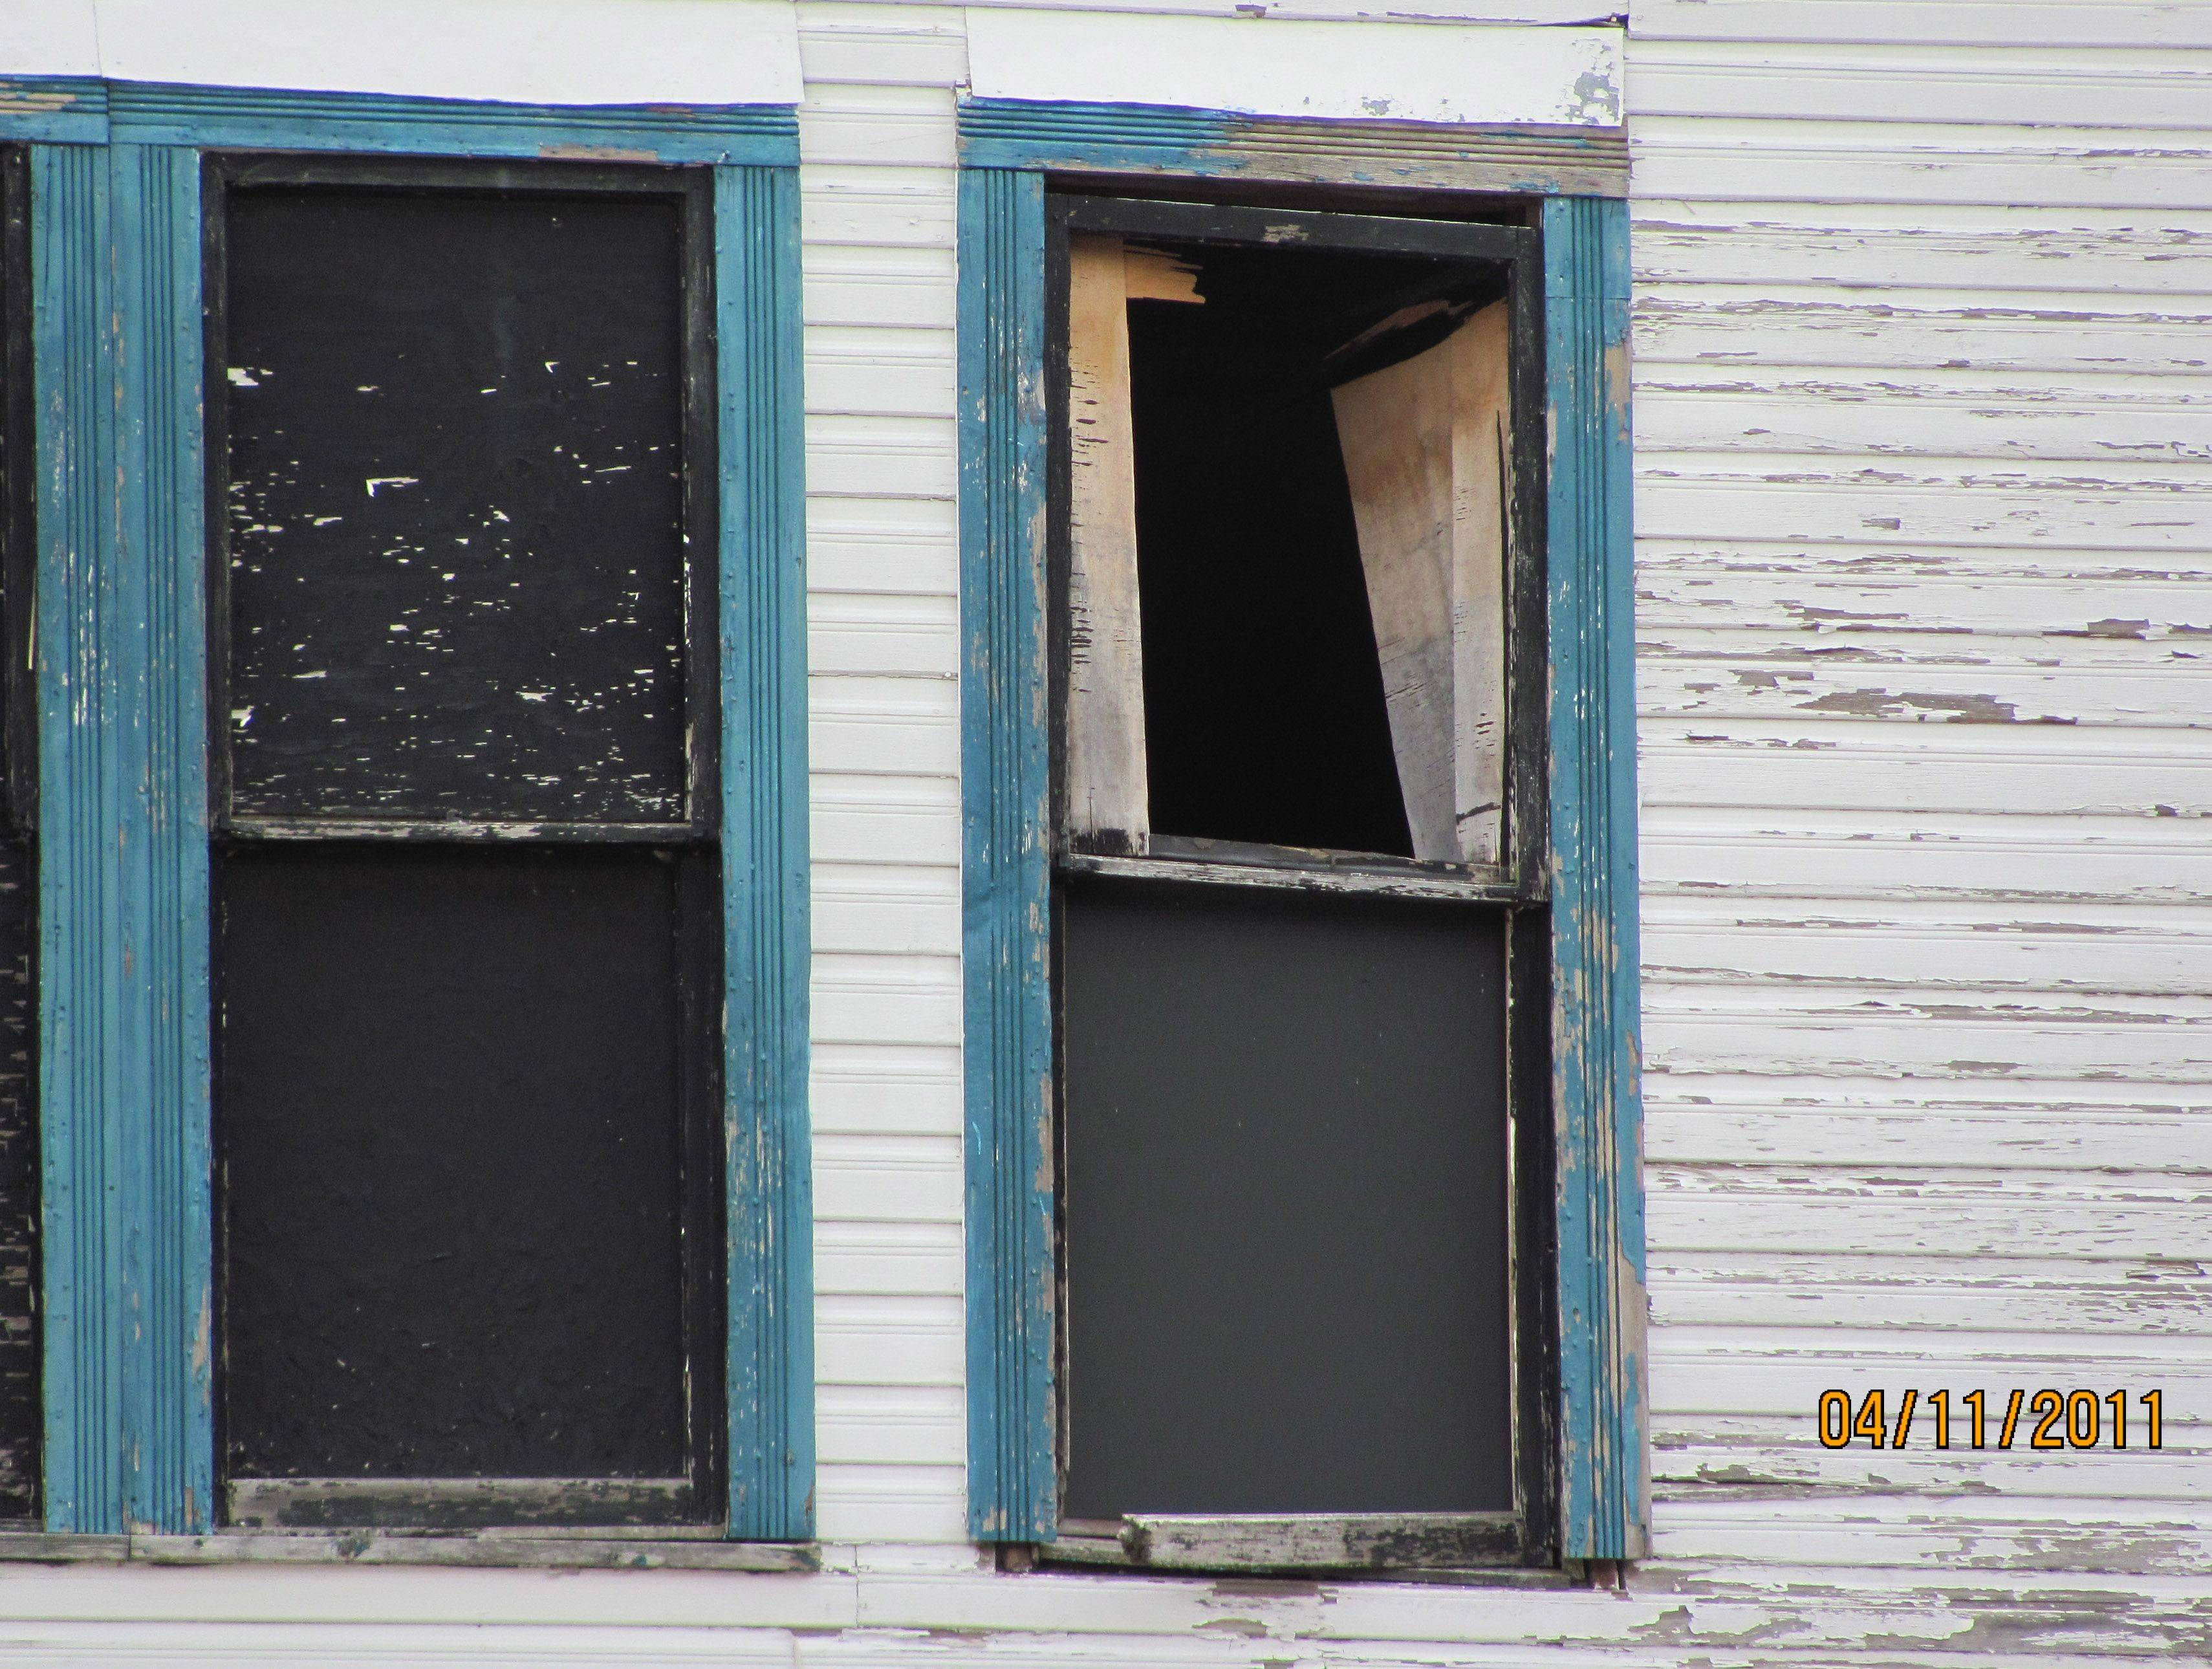 Fox Lake officials took this photo, one of several that show the condition of the 135-year-old hotel.